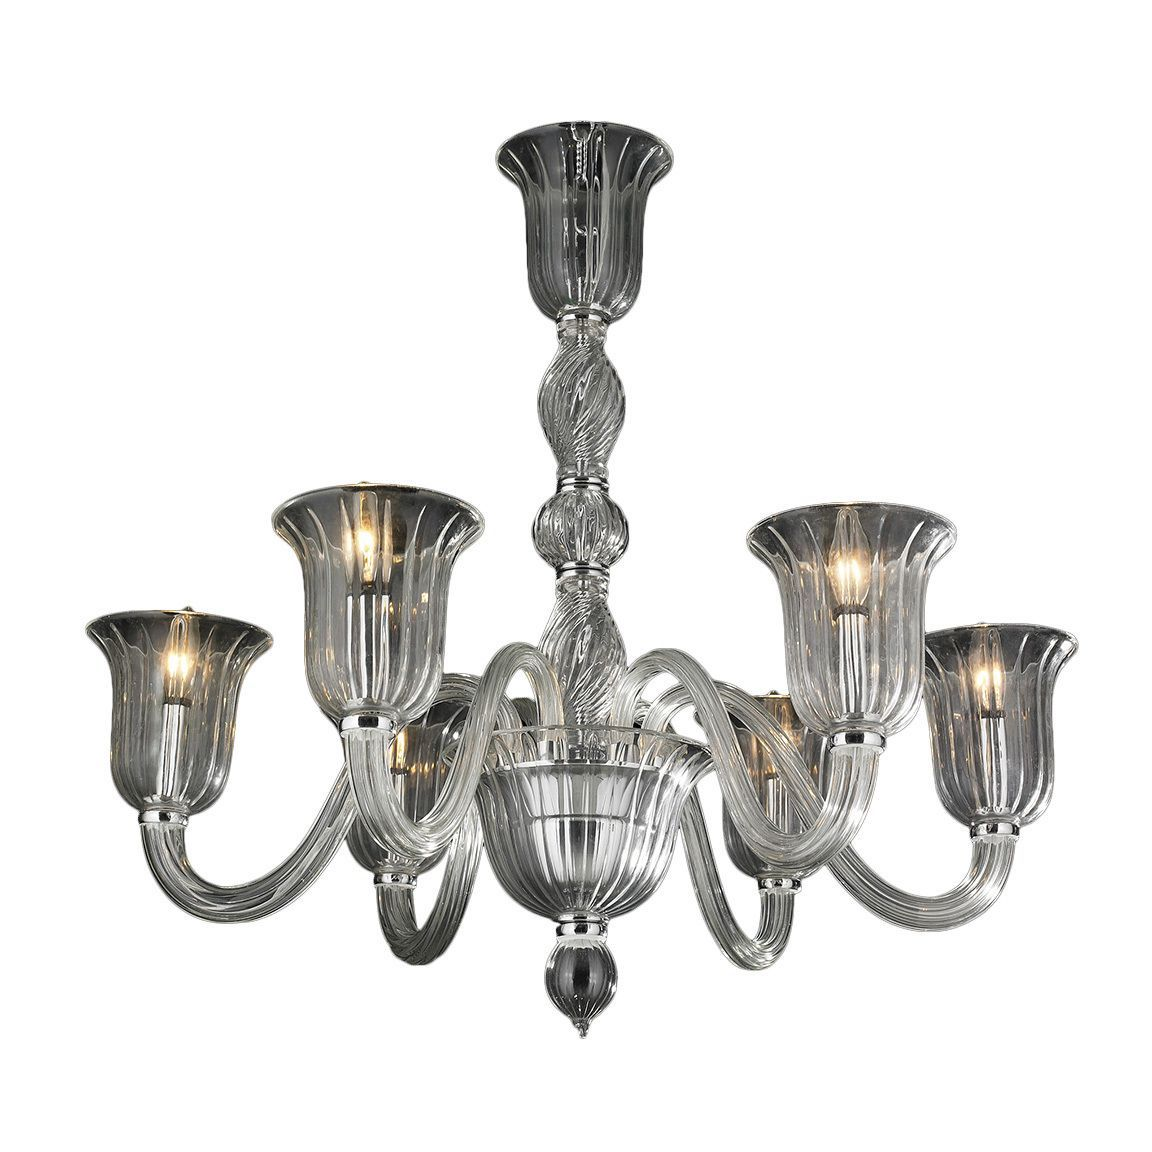 Brilliance Lighting And Chandeliers Murano Venetian Italian Style 6 Light N Gl In Clear Finish Chandelier